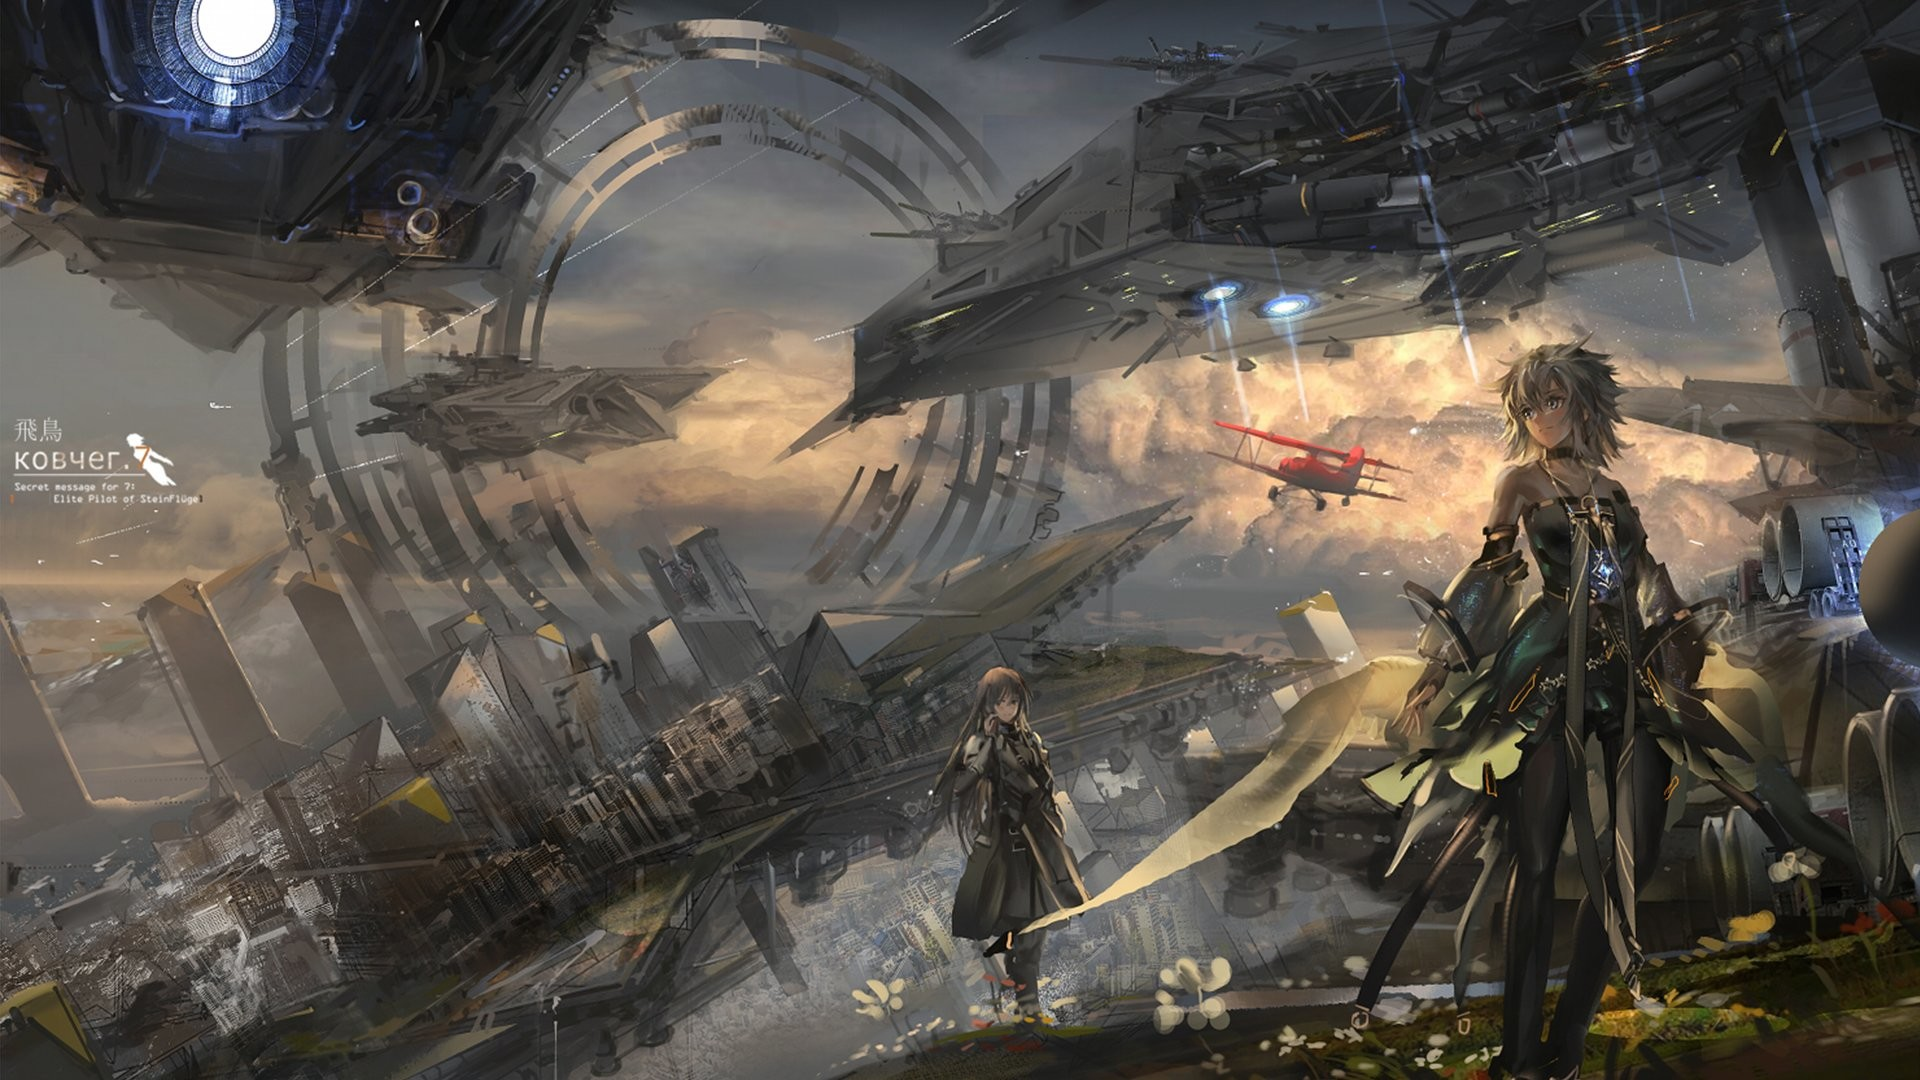 Anime Sci Fi Wallpaper 77 Images